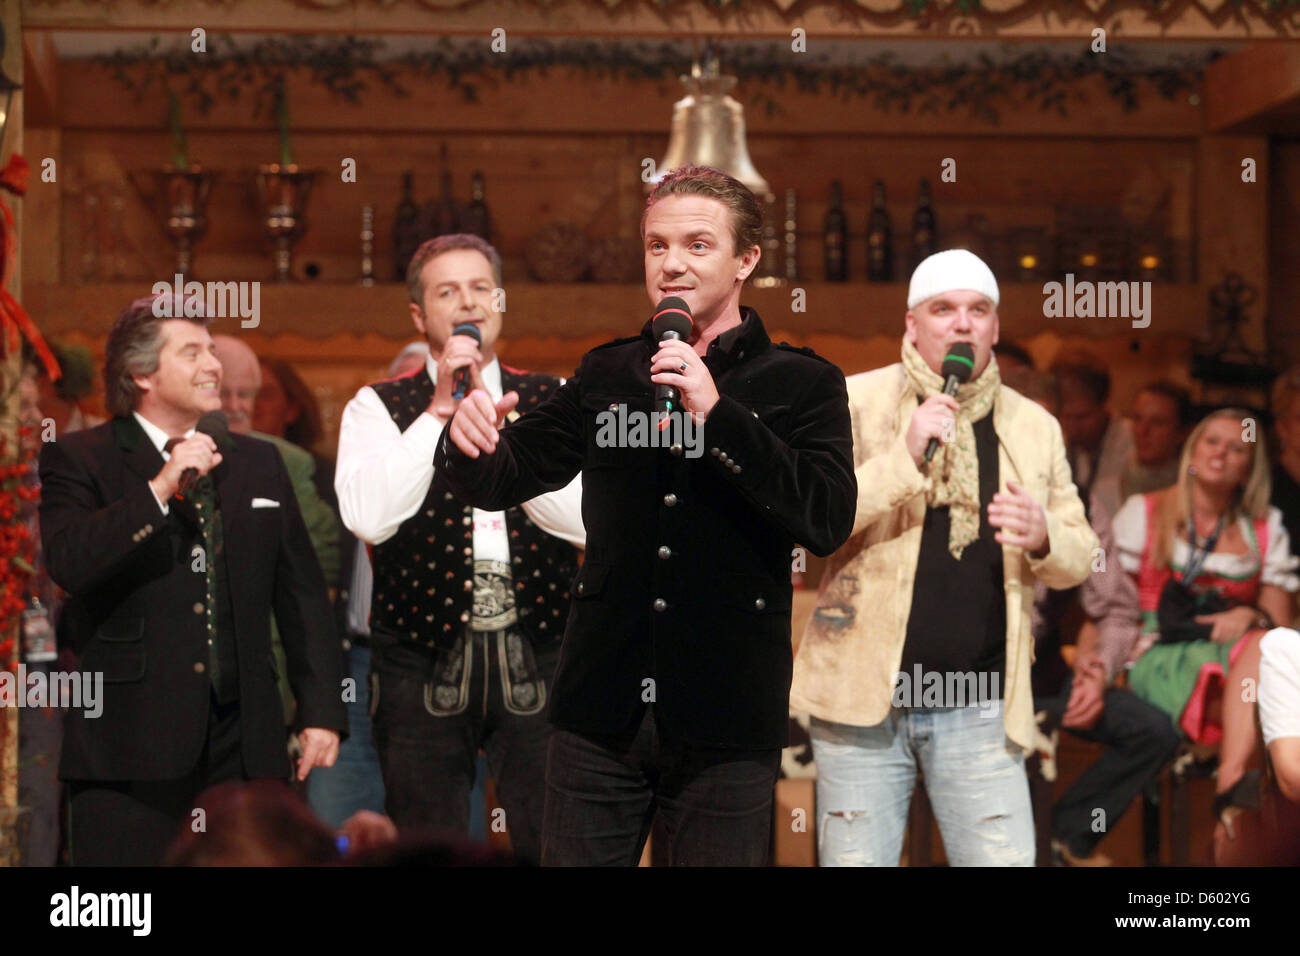 The traditional folk music stars Andy Borg, Norbert Rier, Stefan Mross and DJ Oetzi (l-r)are pictured on stage during - Stock Image